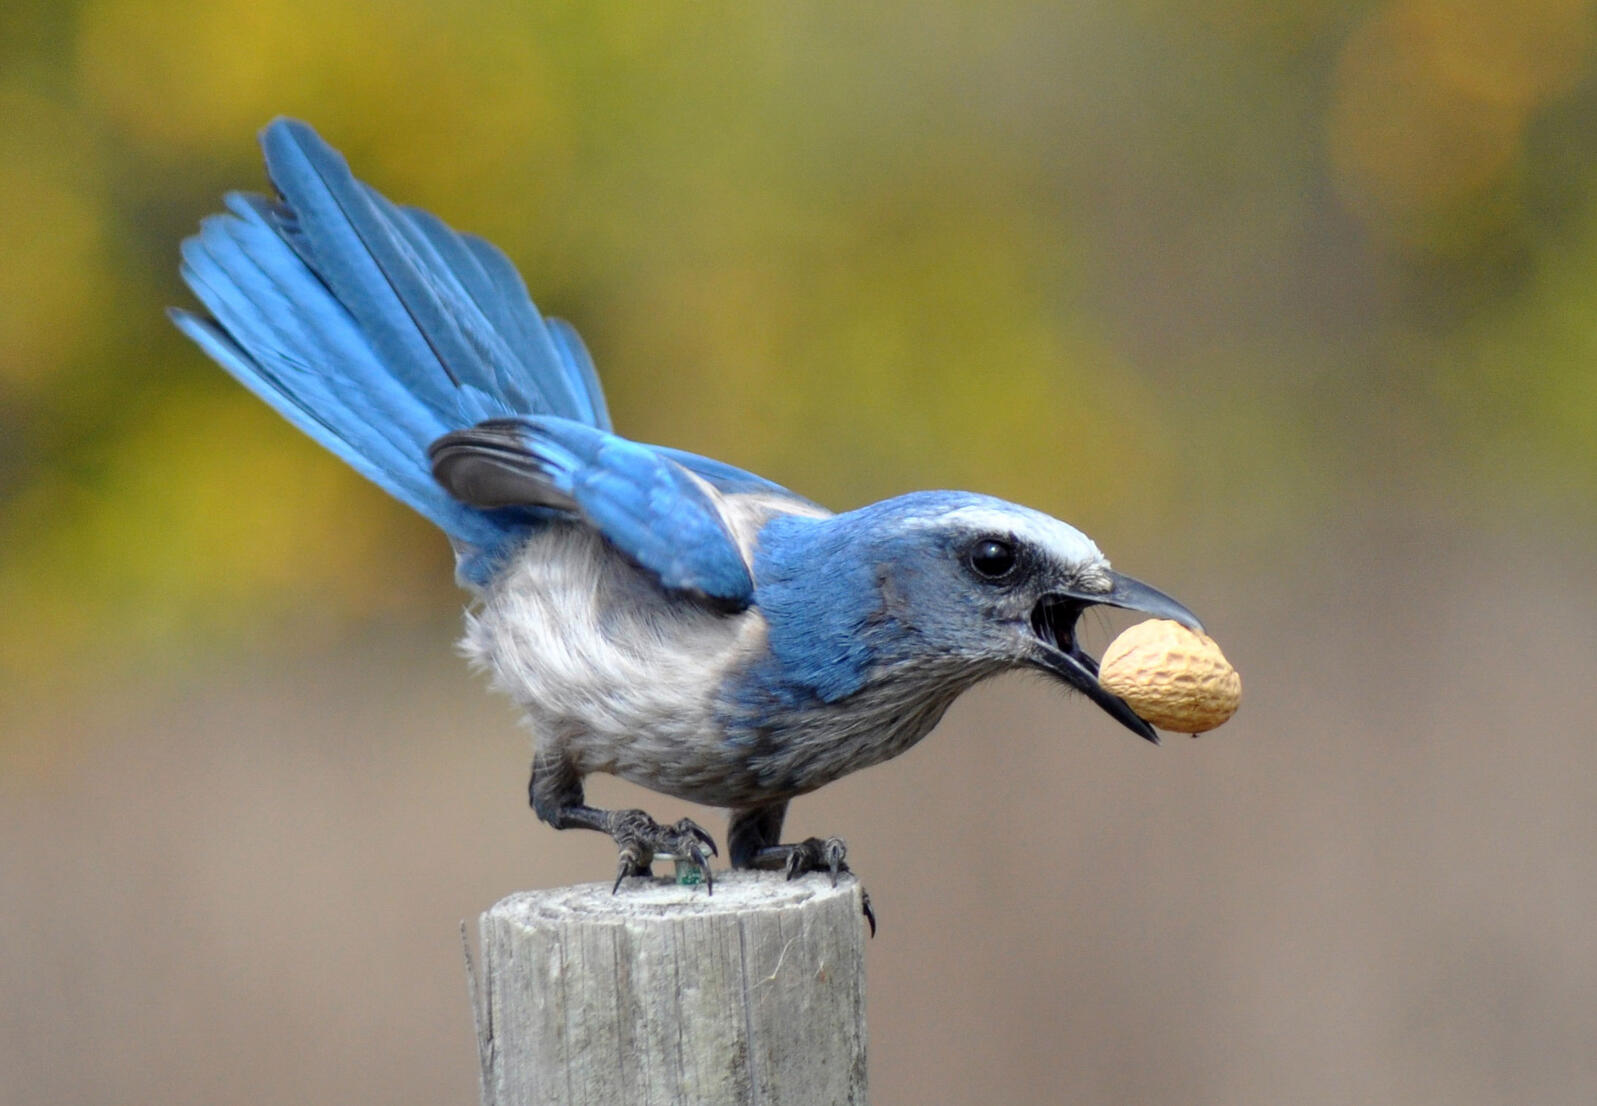 Corvids, including jays like this Florida Scrub-Jay, are known for their ability to create detailed mental maps. Louise E Hunt/Great Backyard Bird Count